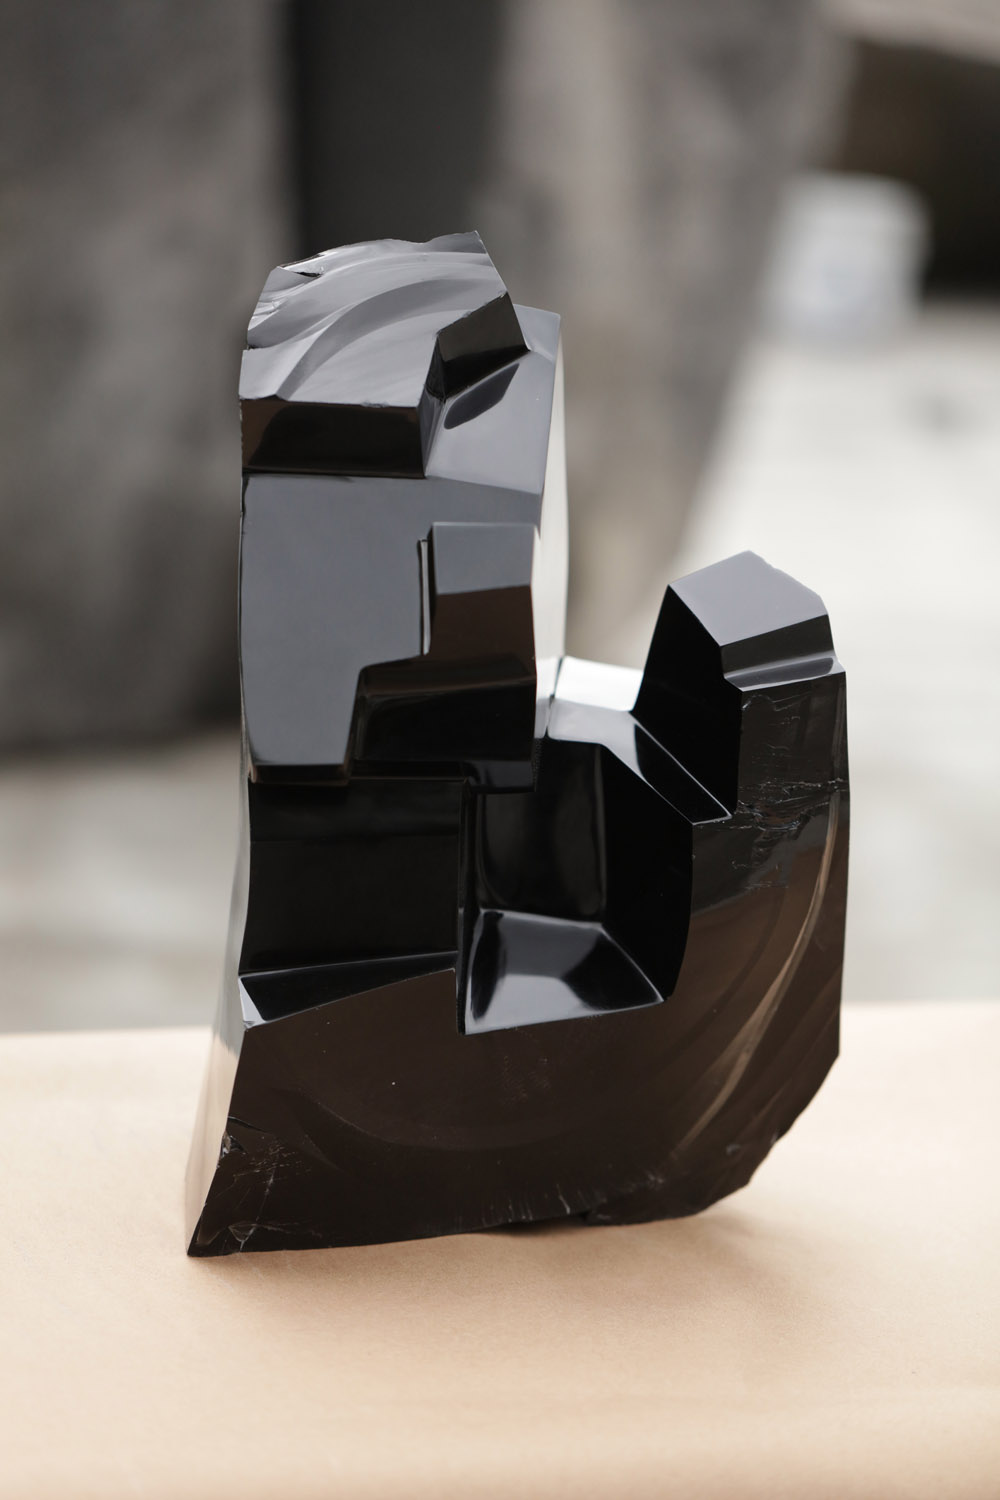 web222-sculpture-Jorge-Yazpik-Obsidian-black-direct-carving-marion-friedmann-gallery.jpg